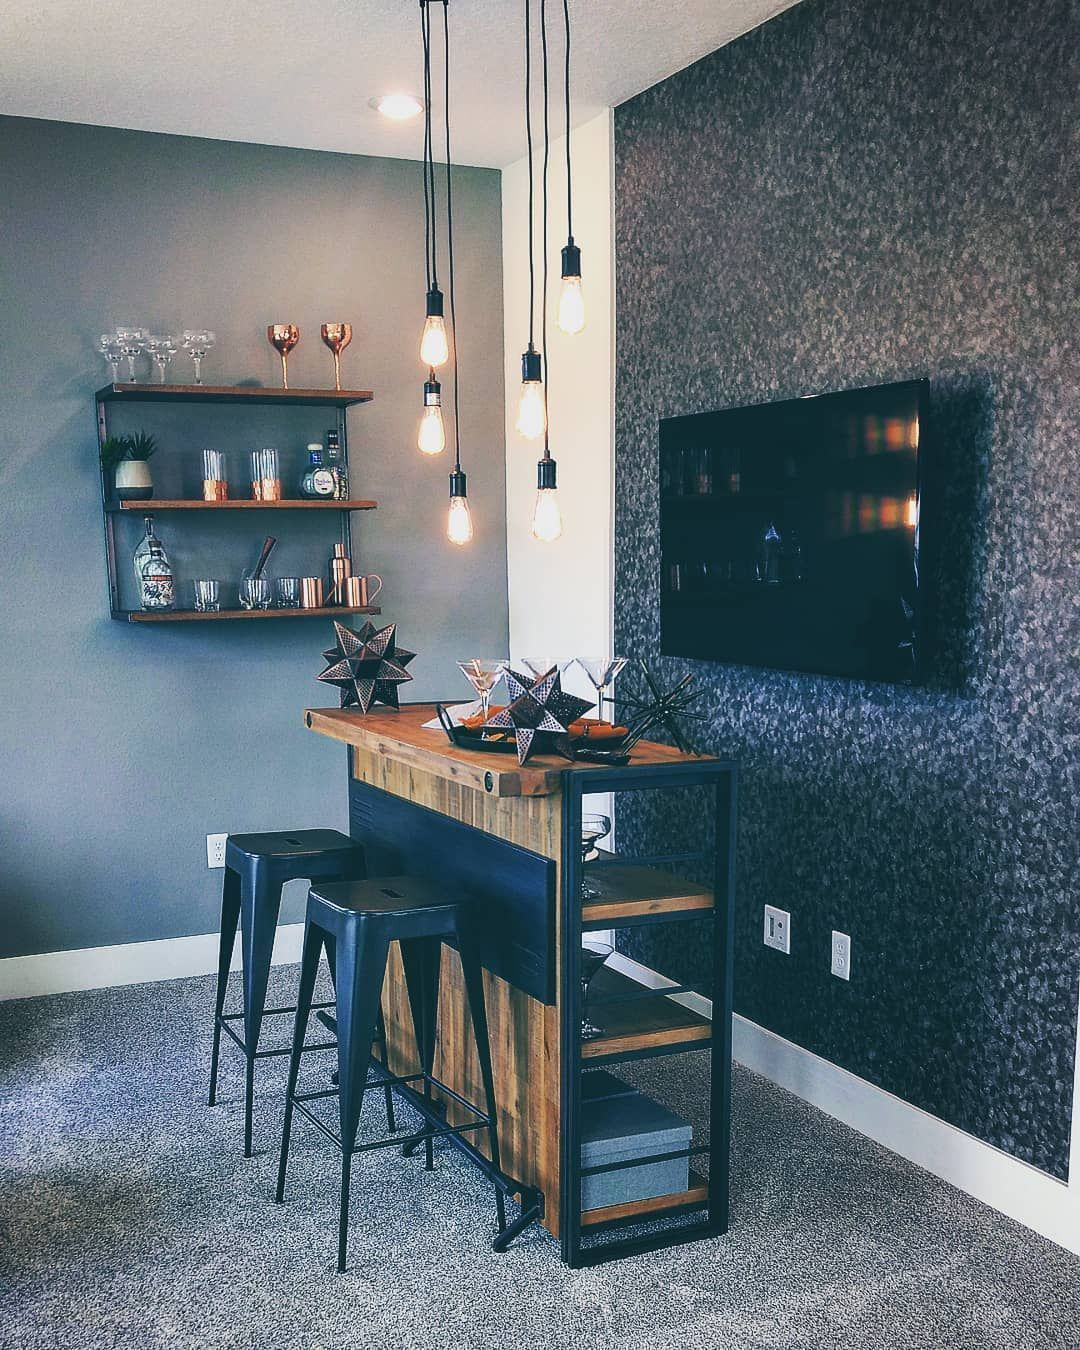 Do You Have A Participation Room In Your Residence Pliable Living Room Spaces Are All The Tenacite I Do In 2020 Home Bar Rooms Bonus Room Design Home Bar Designs